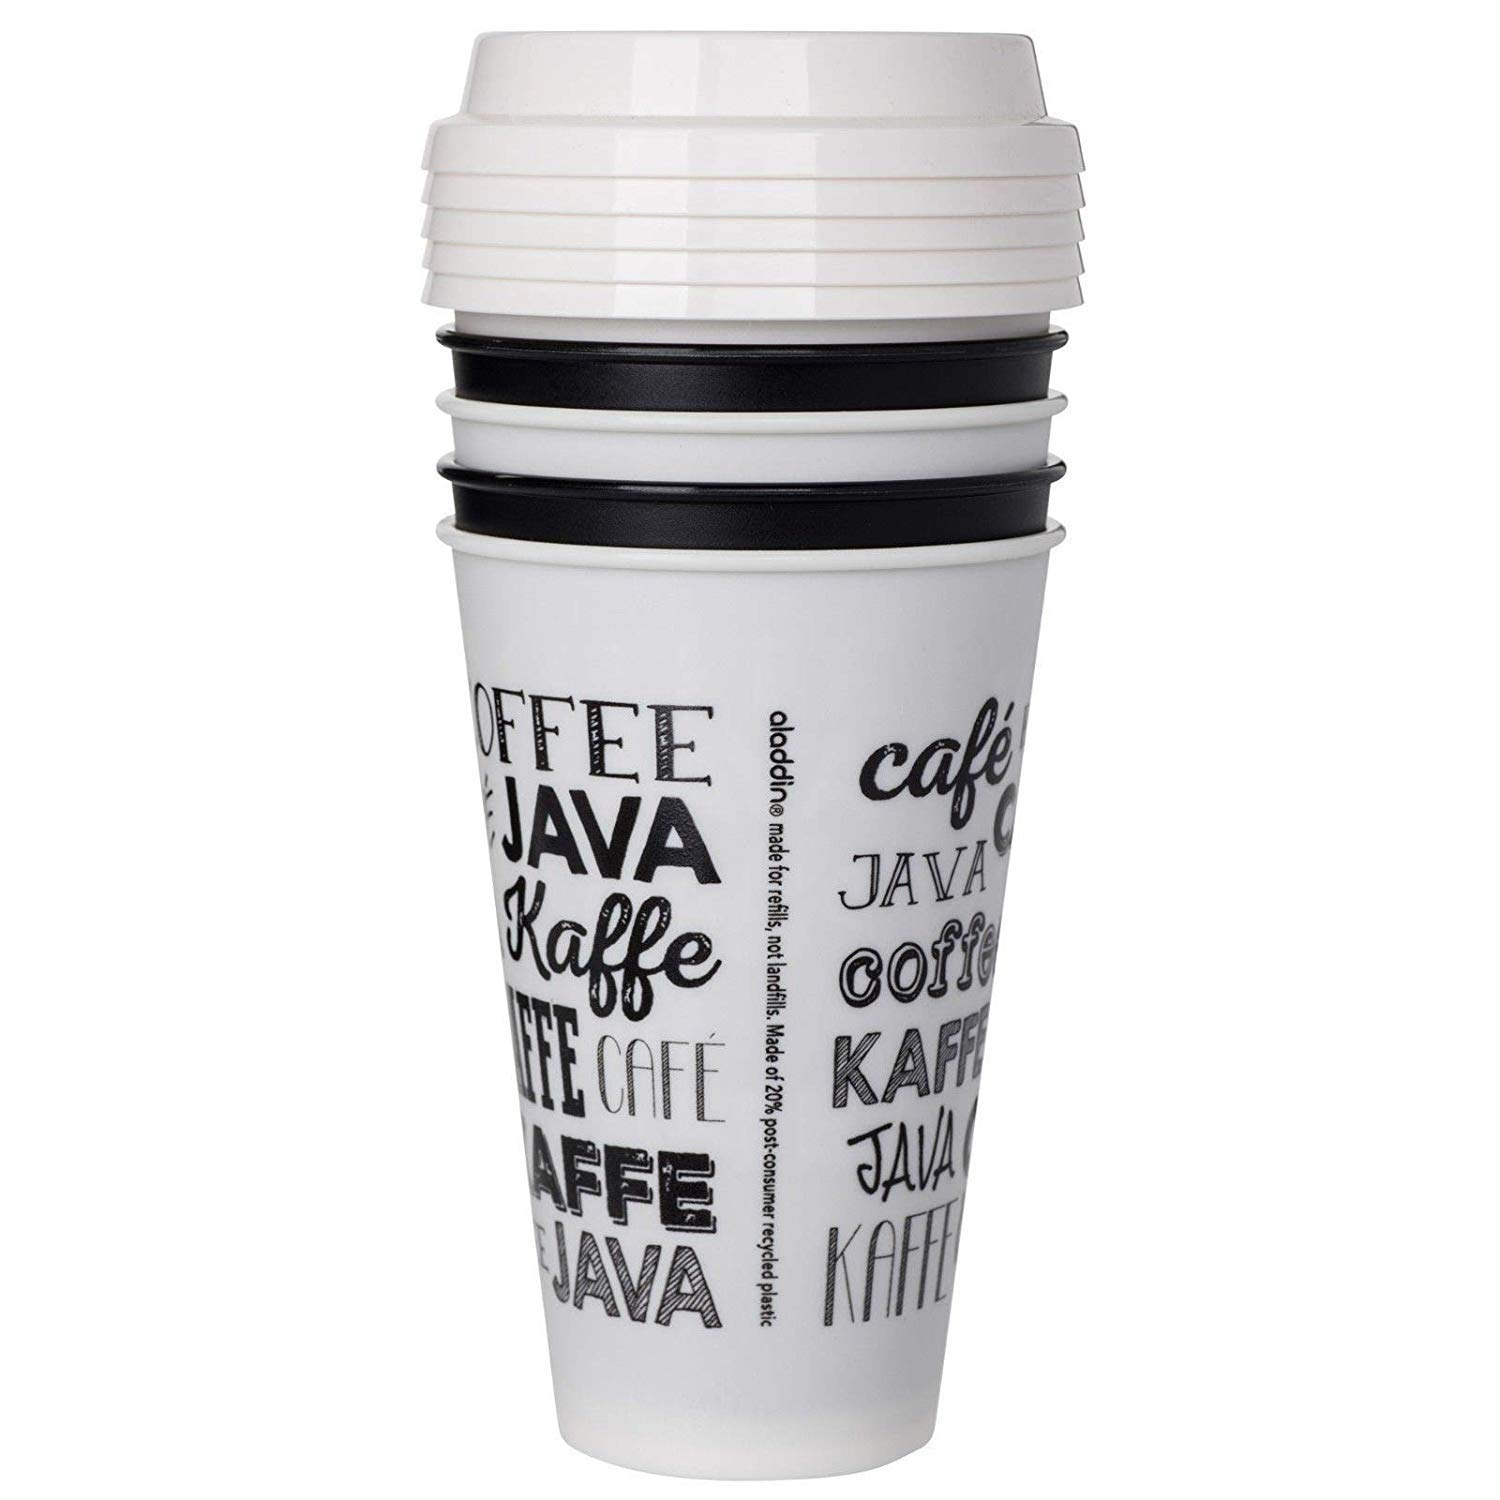 Aladdin Reusable Travel To Go Cups Variety Pack Including 15 Coffee Cups and a Stress Squish